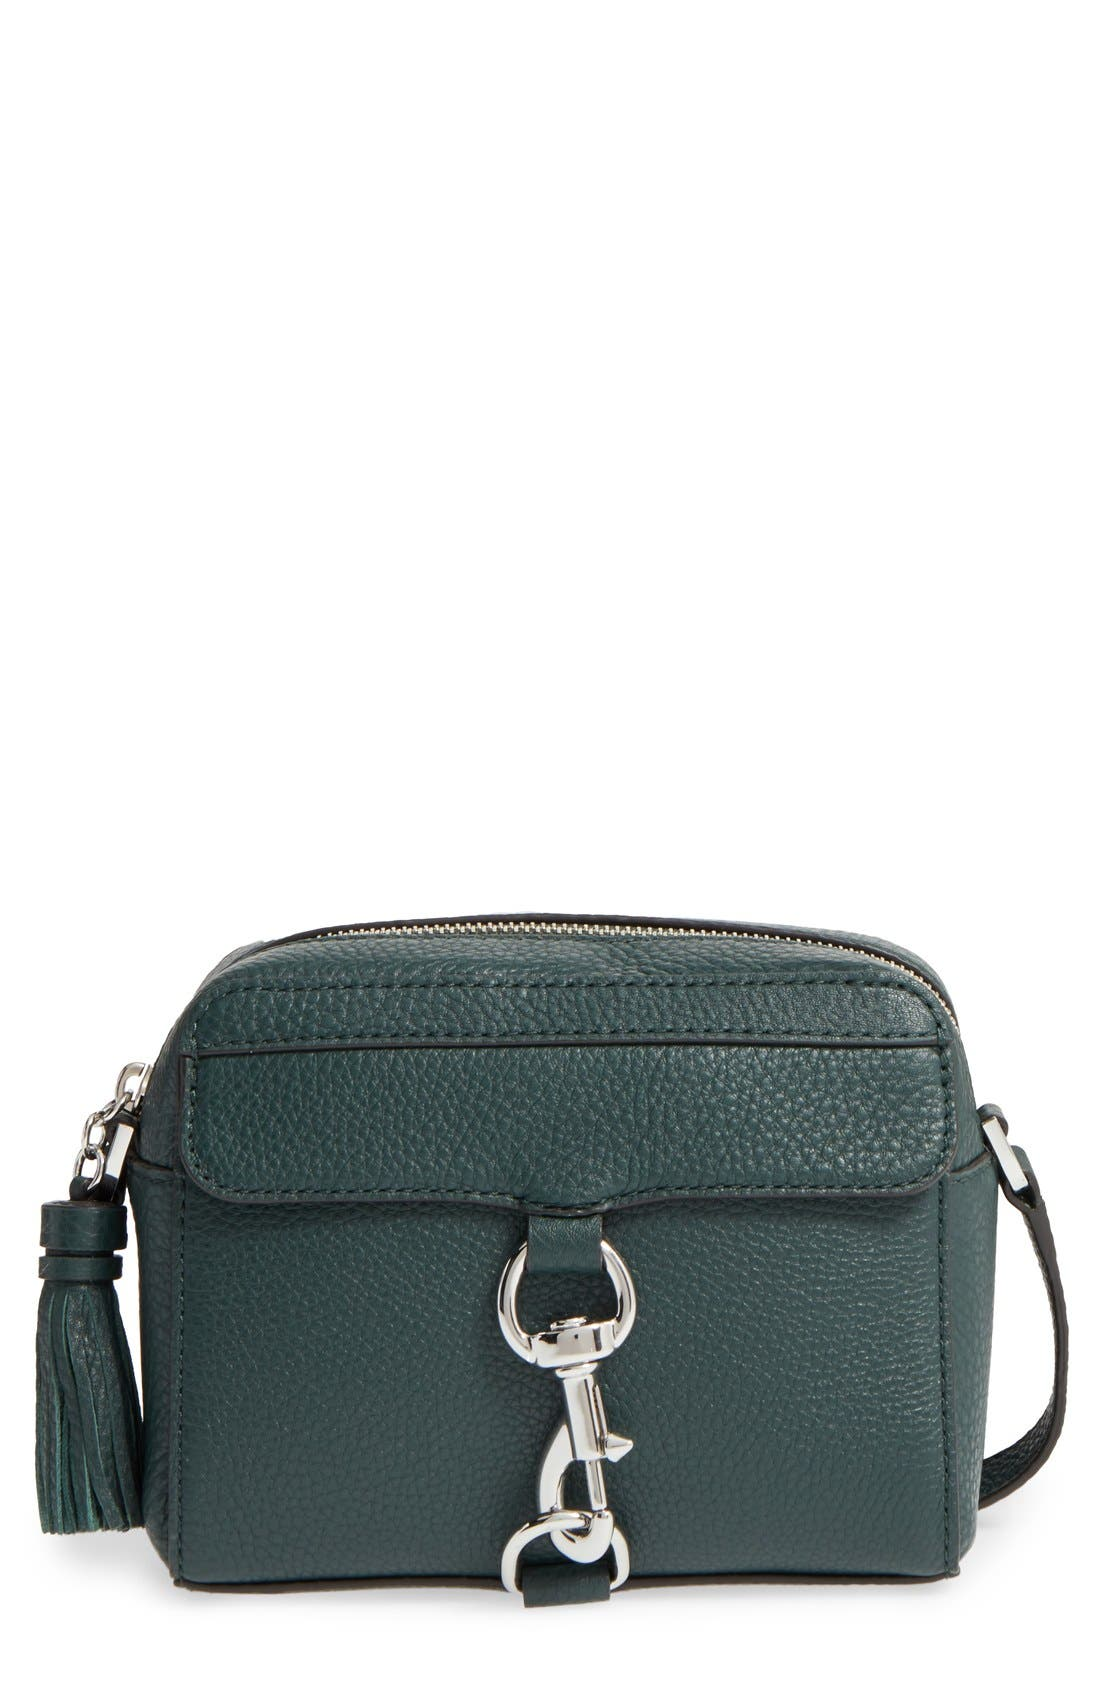 Main Image - Rebecca Minkoff MAB Camera Bag